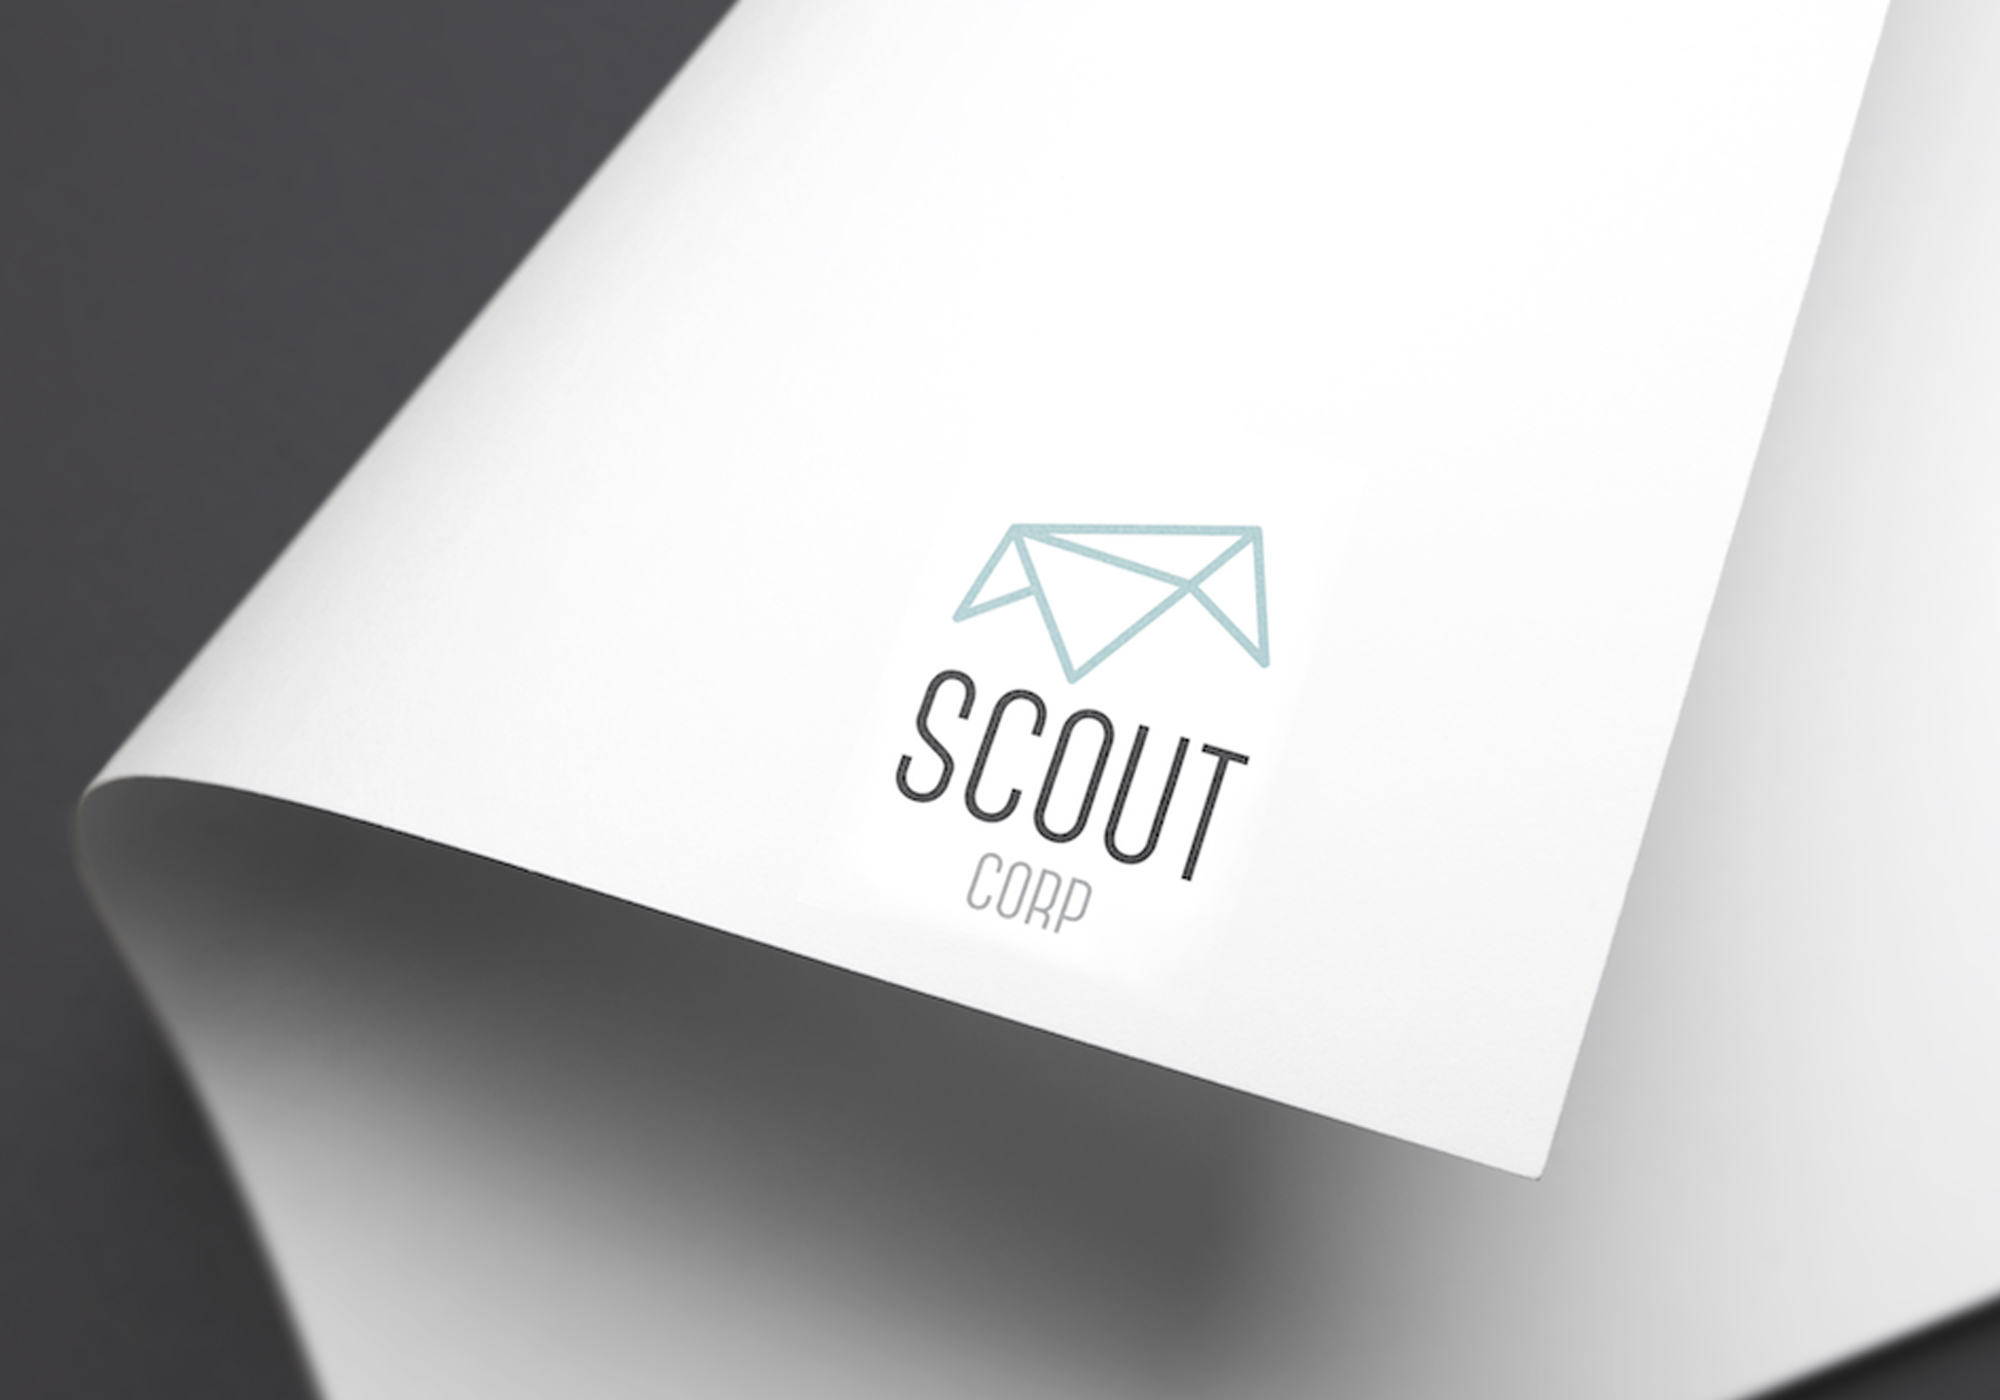 Scout Corp Property Management Was Looking For A Fresh New Logo To Launch Their Business With The Is Based On An Origami House And Developed Using